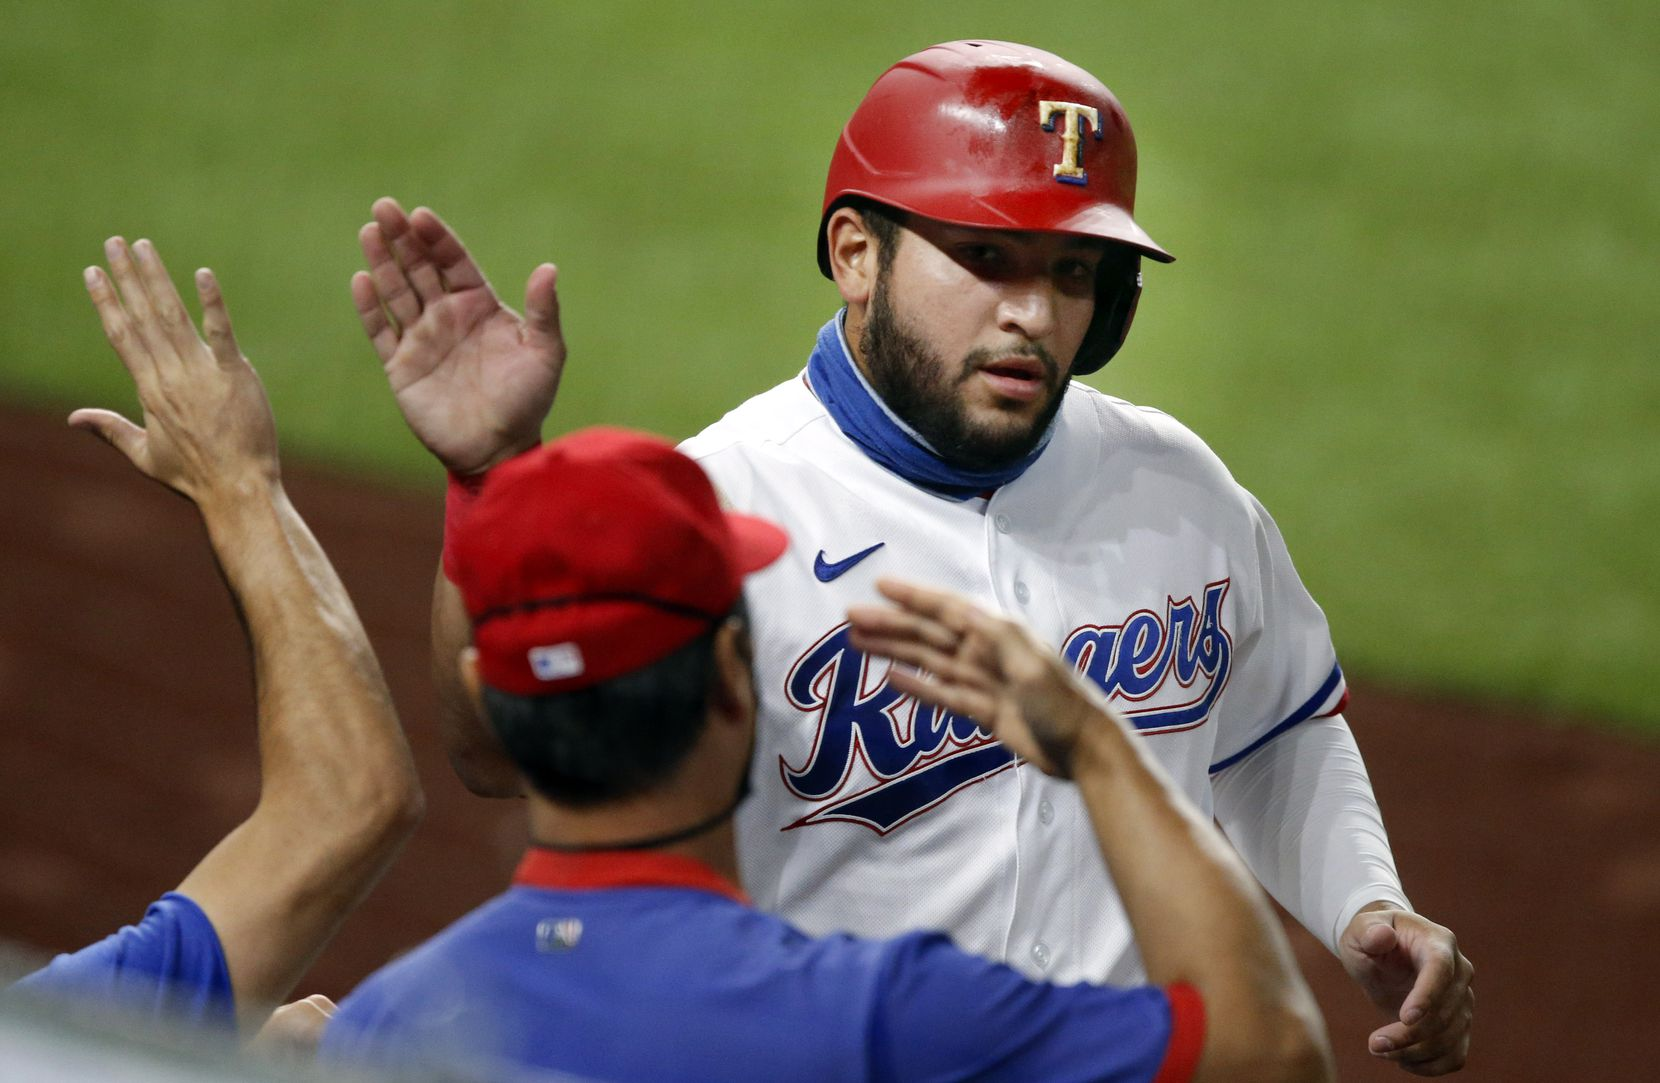 Texas Rangers Jose Trevino (56) is congratulated on his run during the second inning against the Oakland Athletics at Globe Life Field in Arlington, Texas,Tuesday, August 25, 2020. He scored on a single by Texas Rangers Isiah Kiner-Falefa (9). (Tom Fox/The Dallas Morning News)